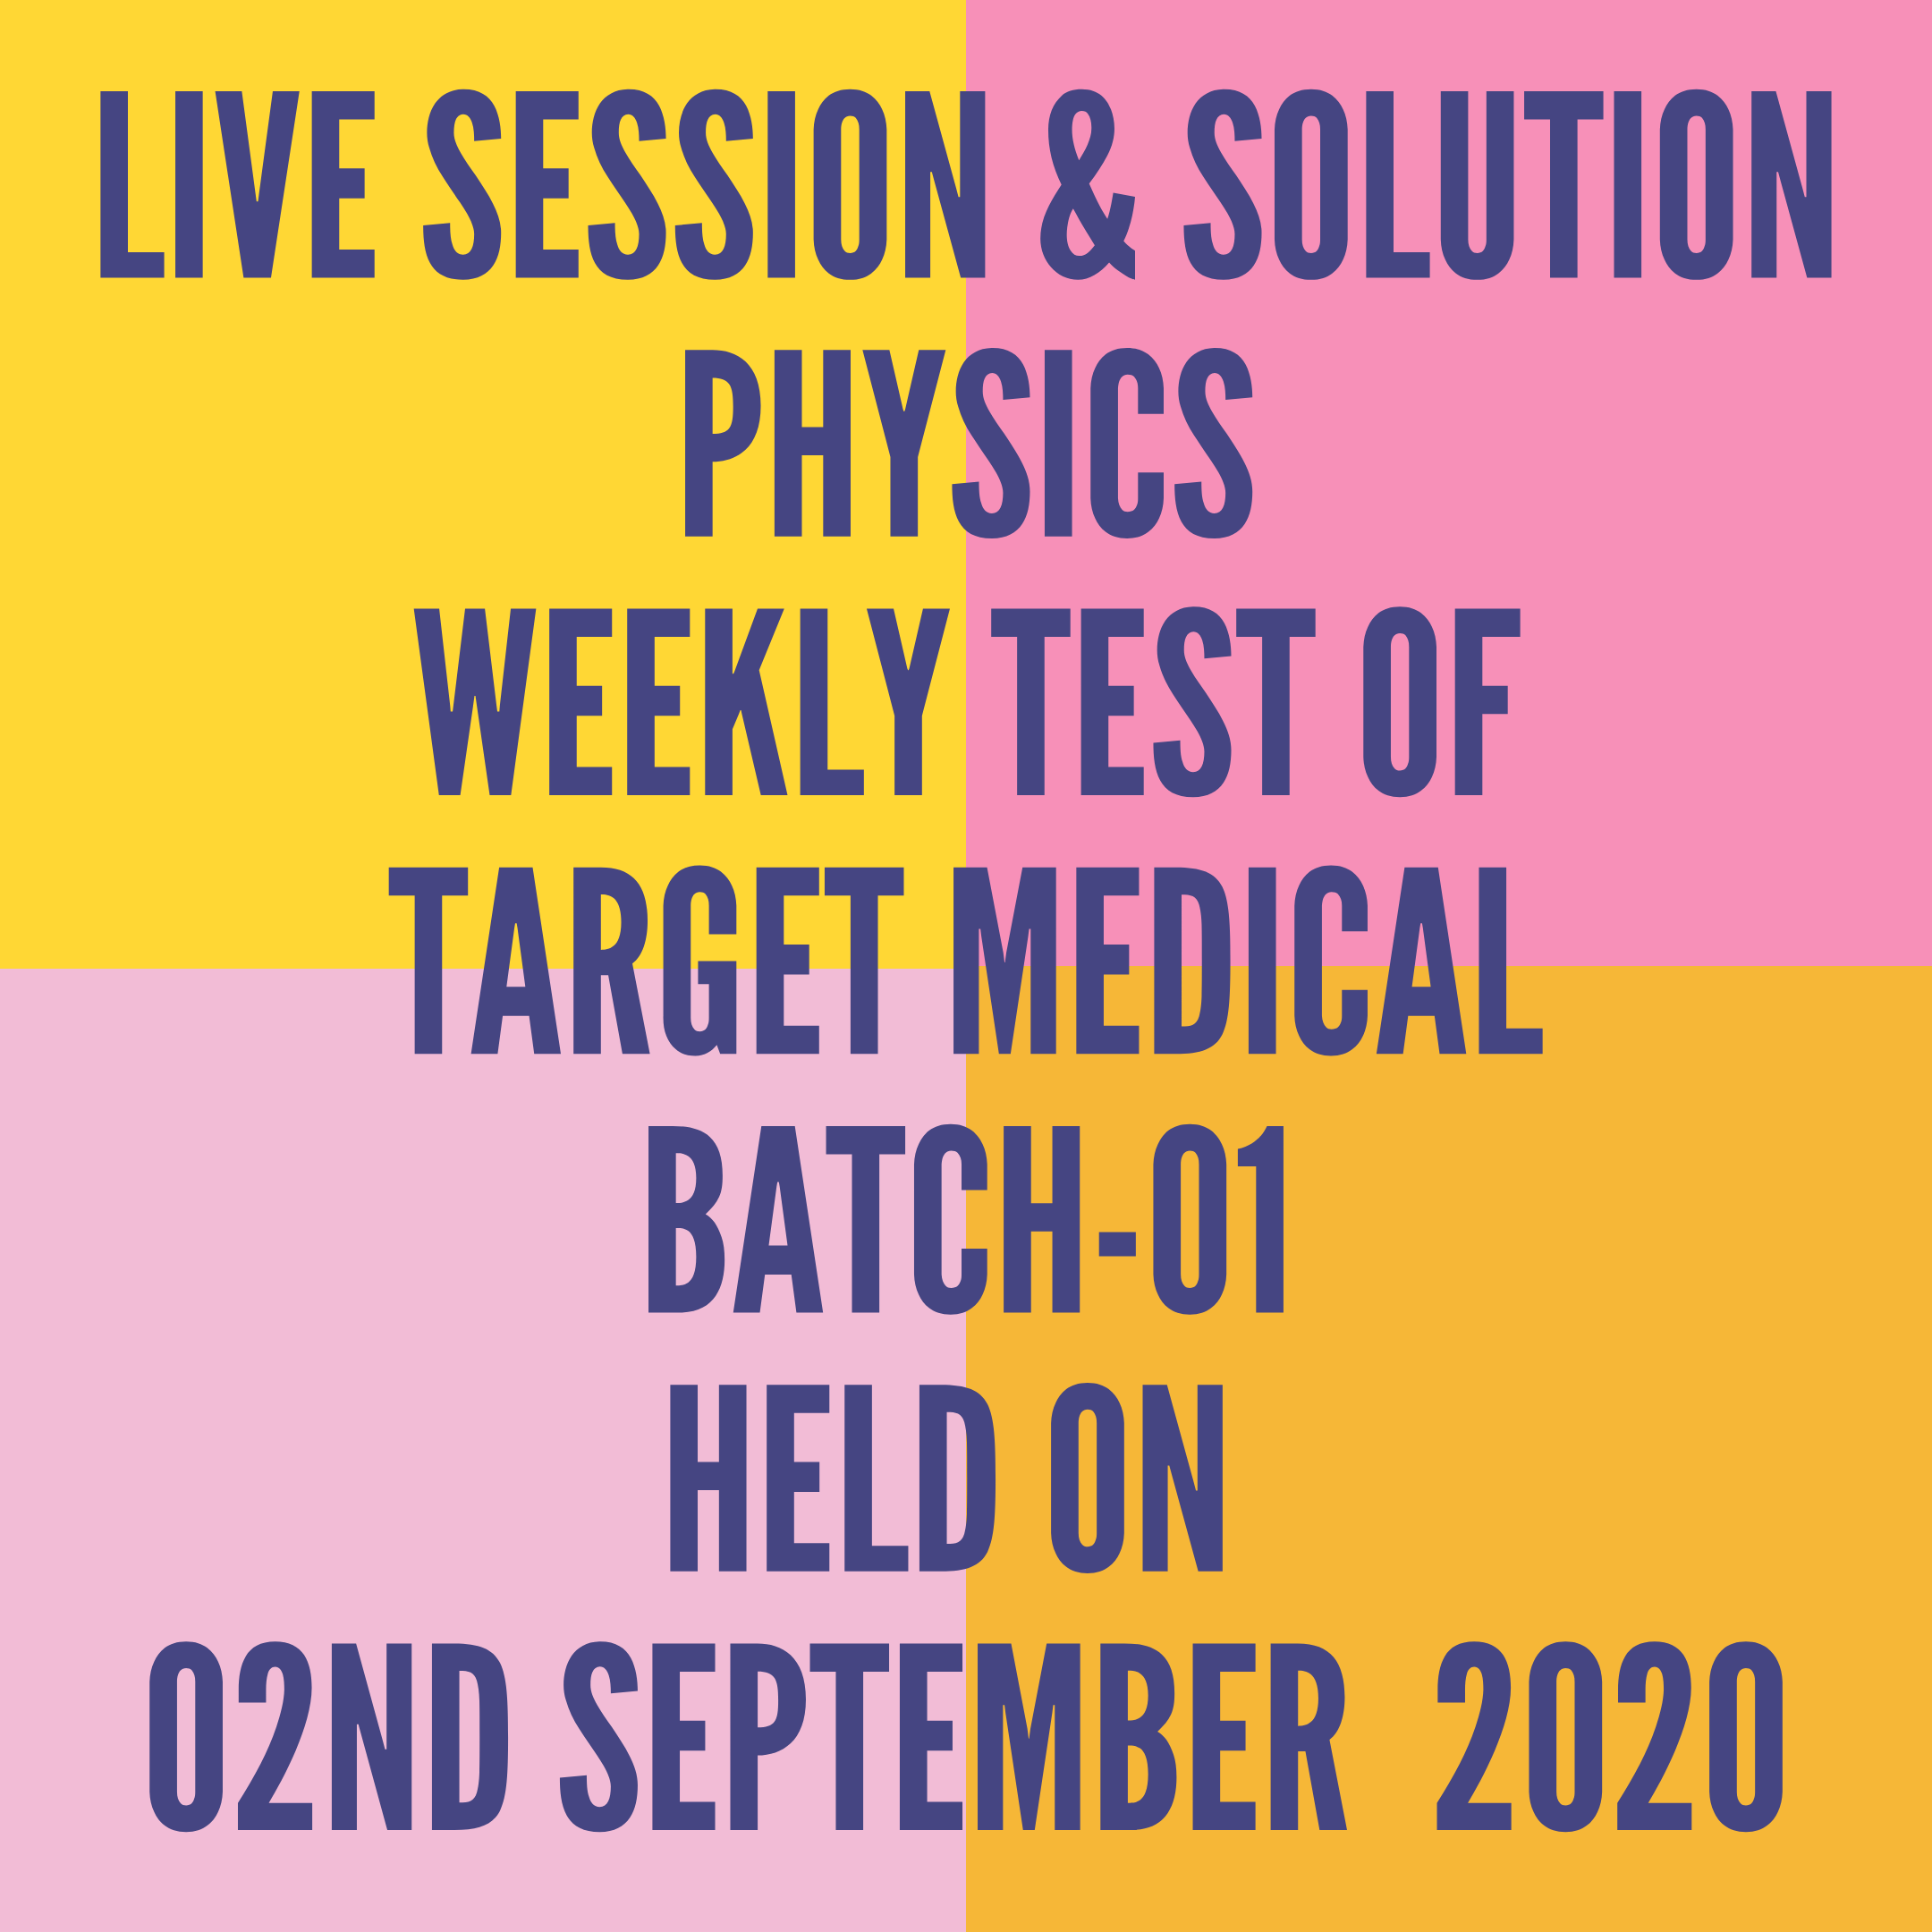 LIVE SESSION & SOLUTION PHYSICS WEEKLY TEST OF TARGET MEDICAL BATCH-01 HELD ON 02ND SEPTEMBER  2020